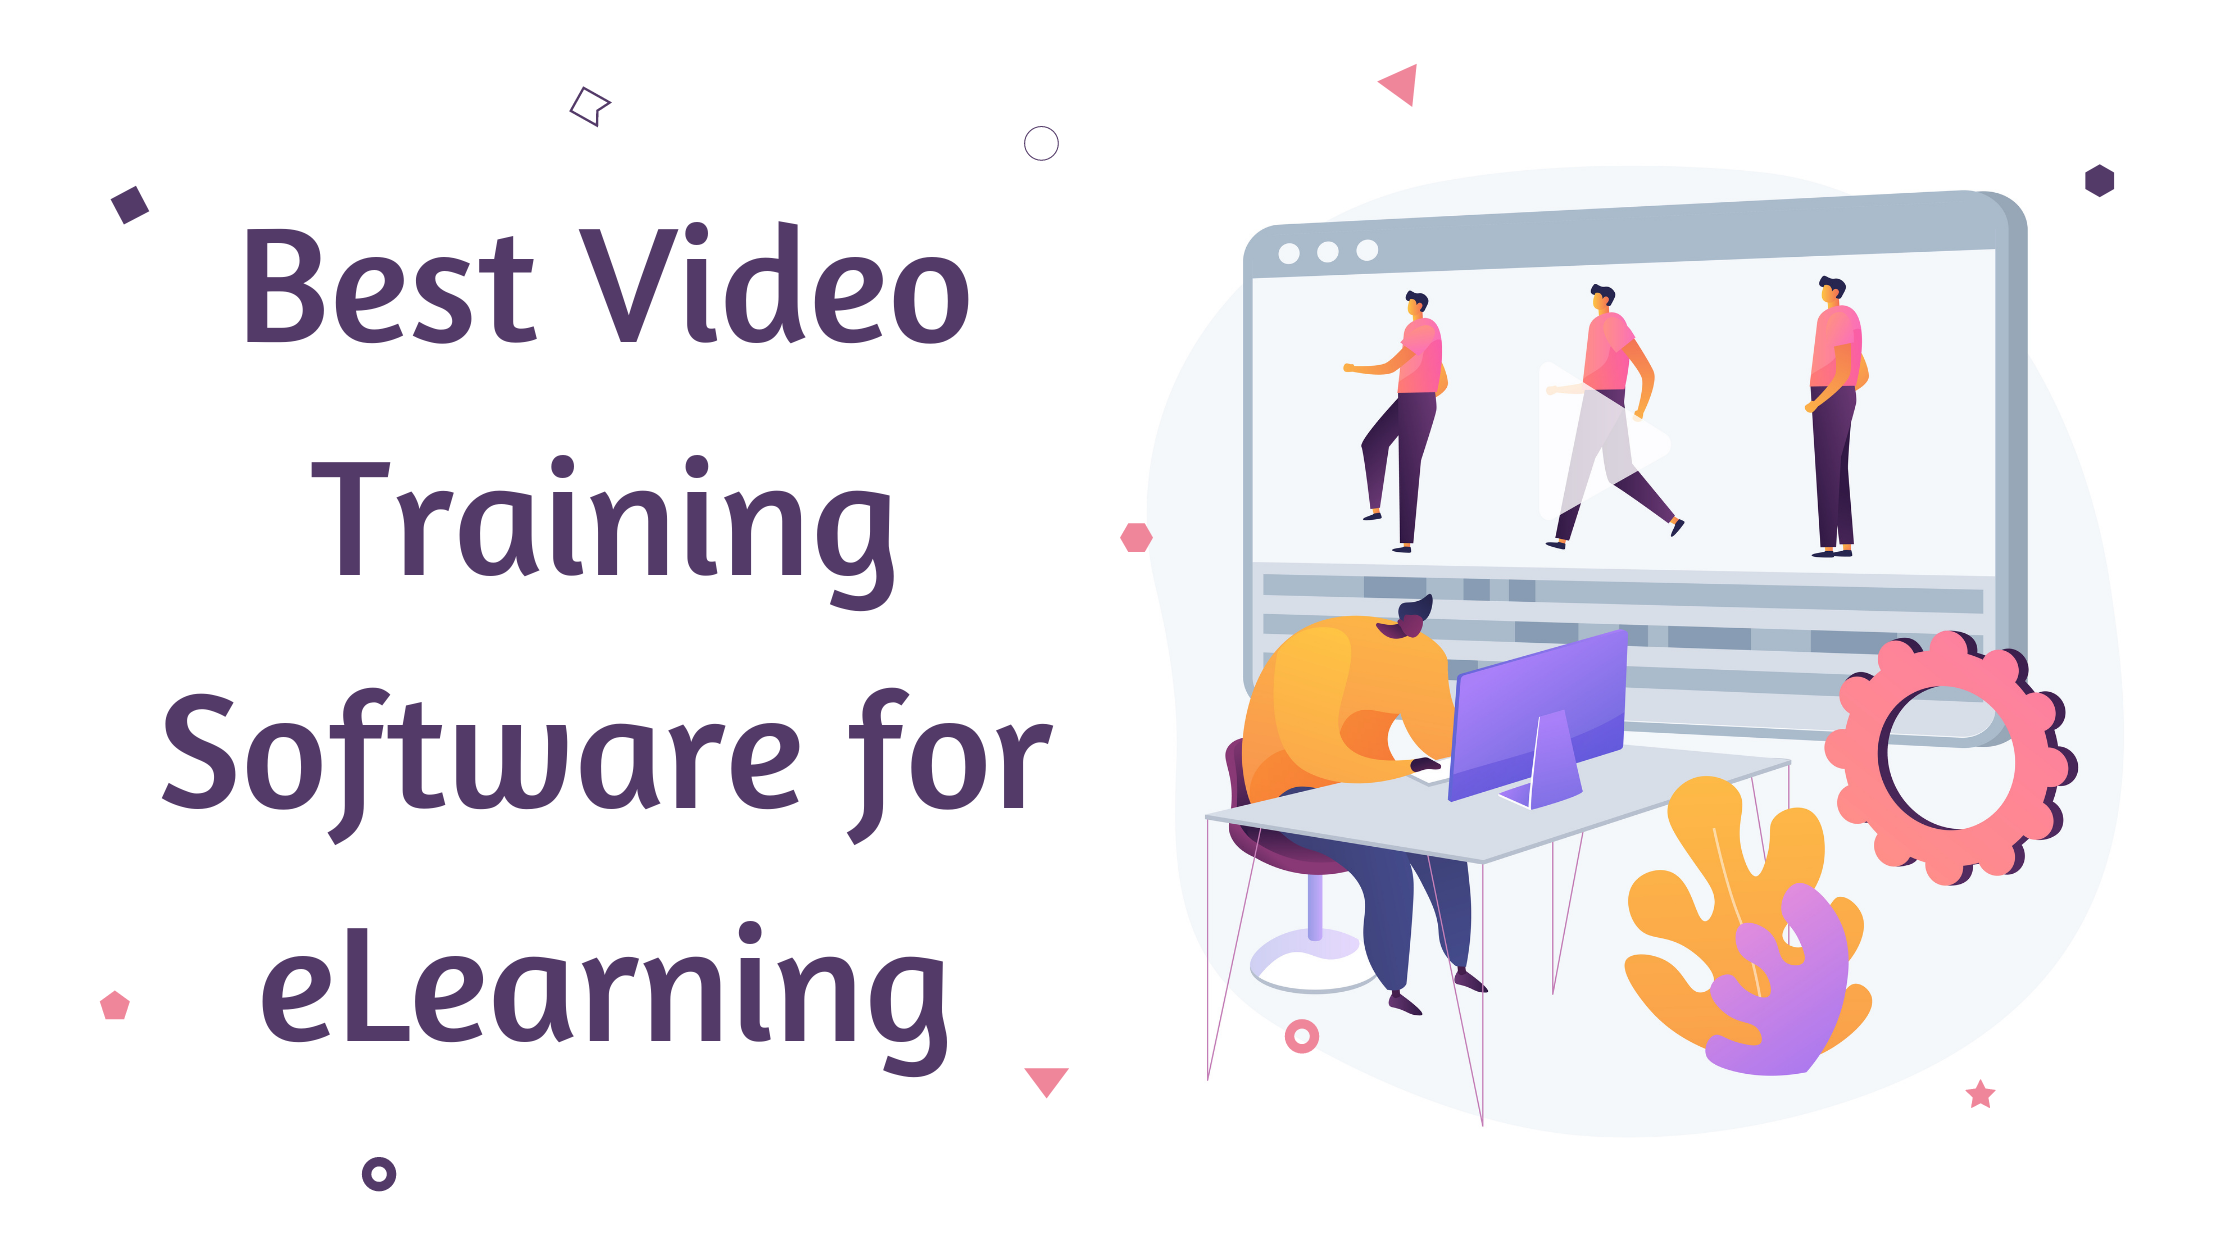 Best video training software for eLearning